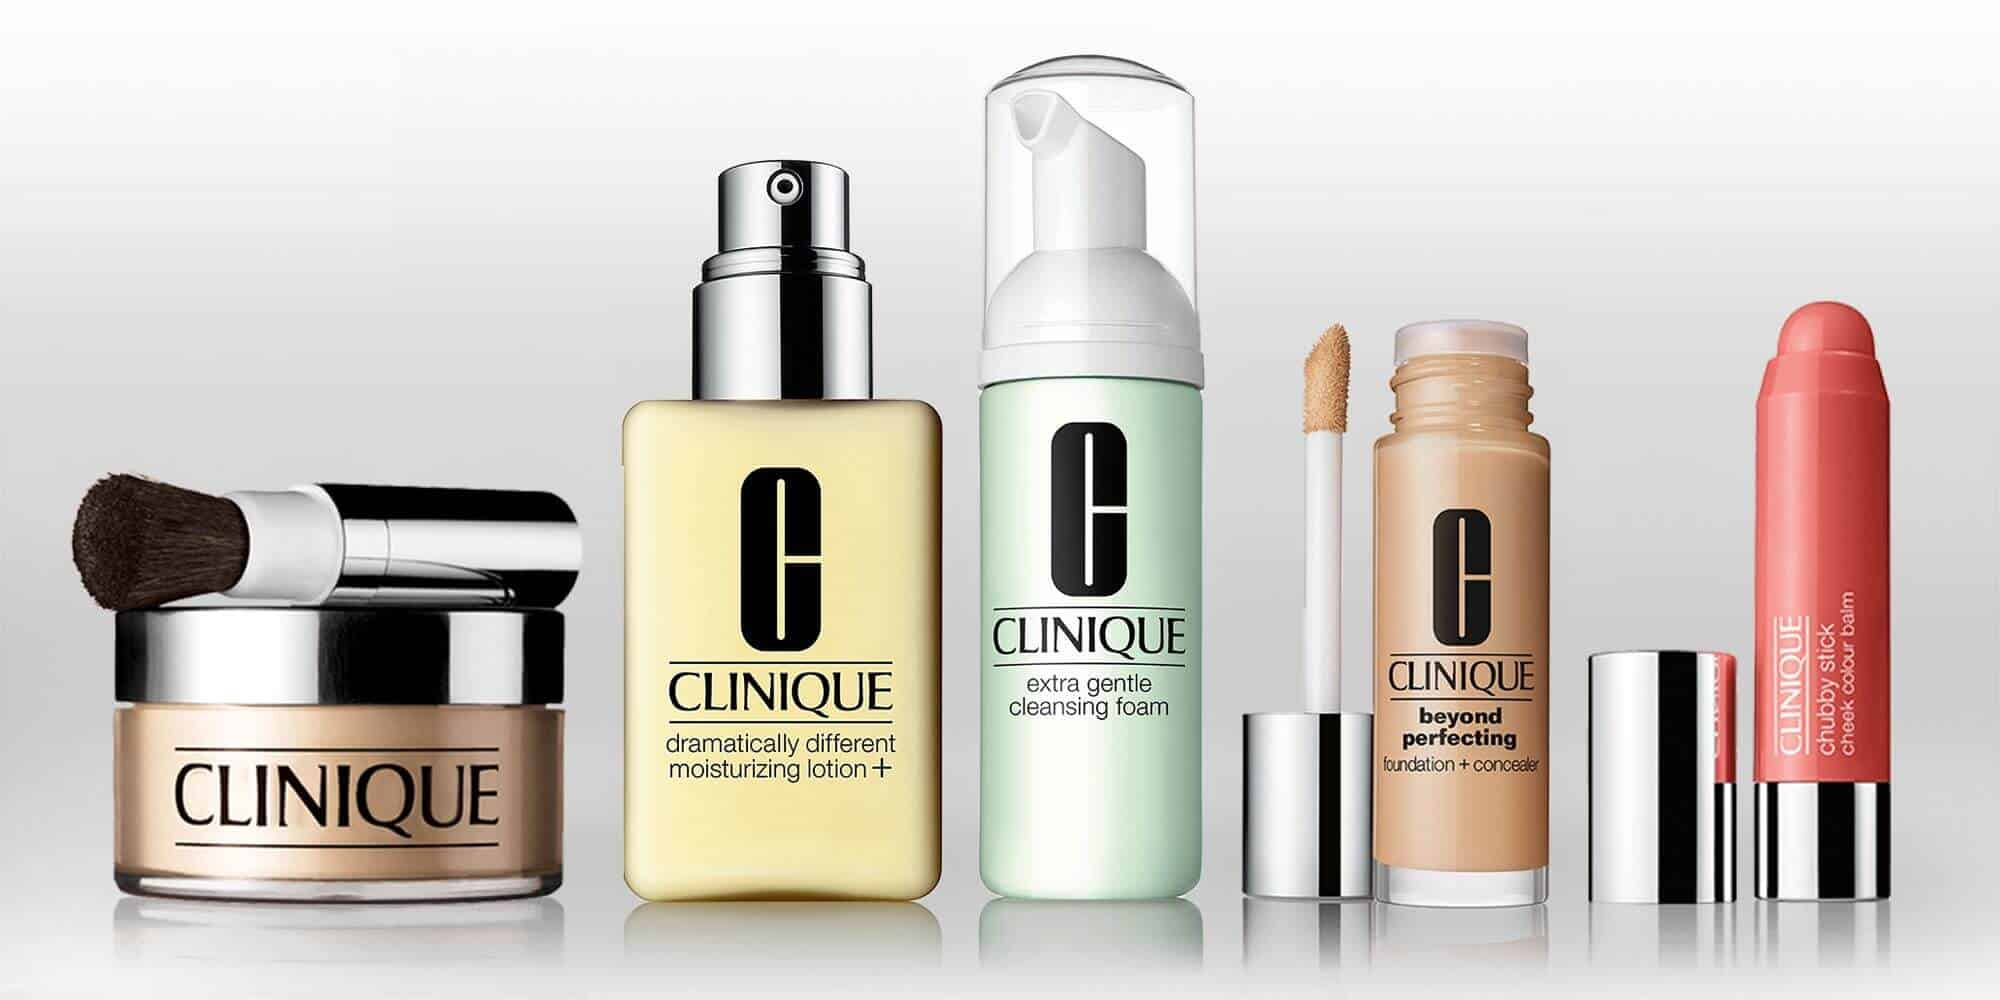 Is Clinique Cruelty-Free and Vegan?